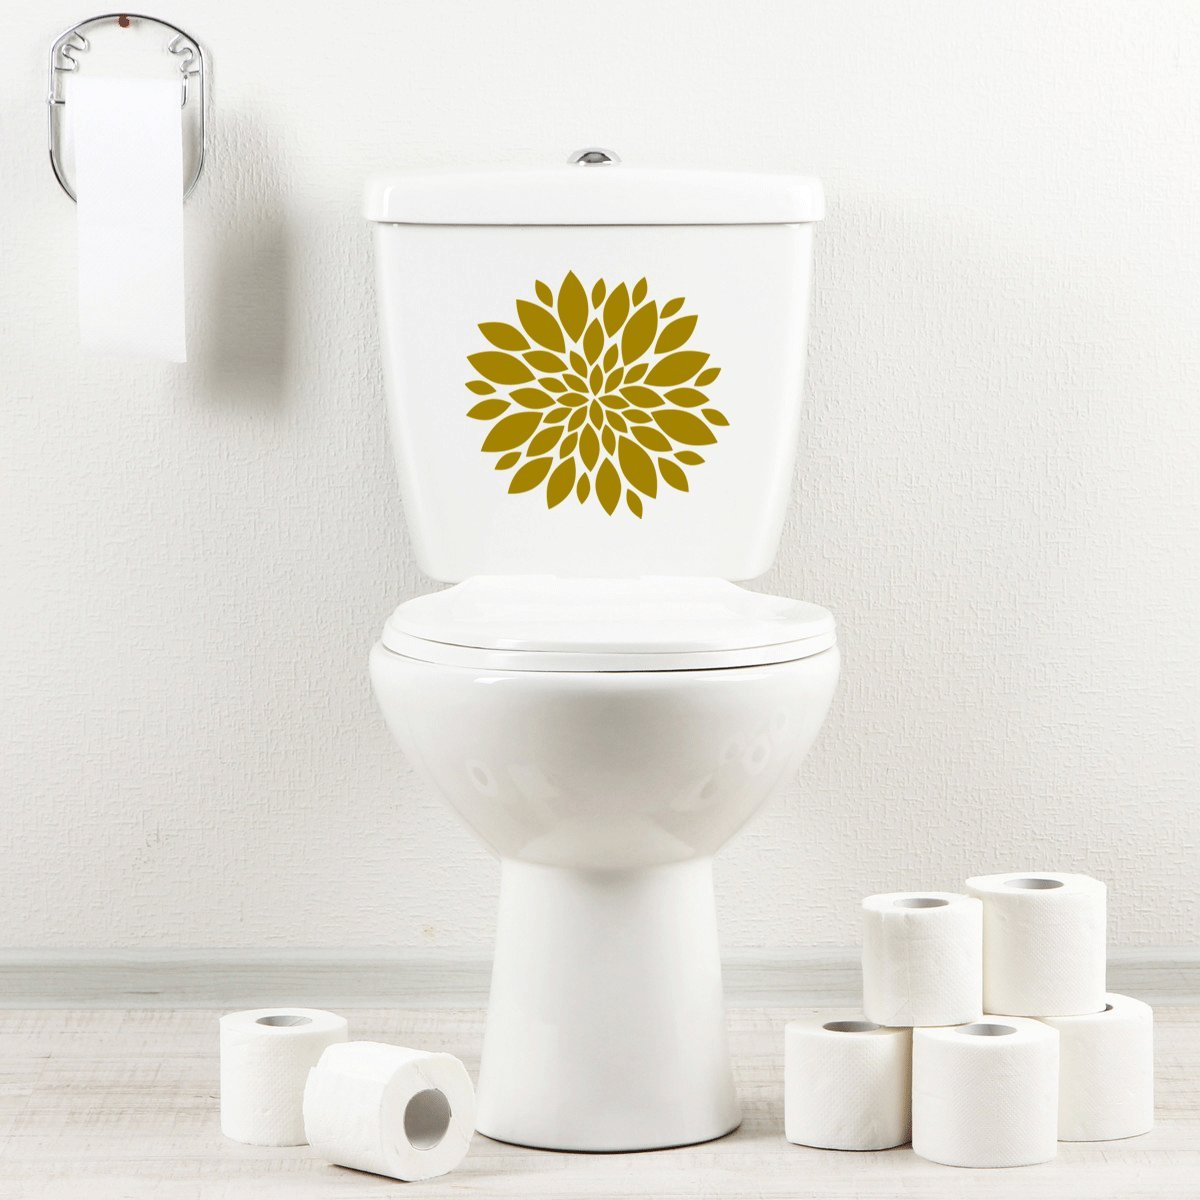 StickAny Bathroom Decal Series Flower Burst Sticker for Toilet Bowl, Bath, Seat (Black)